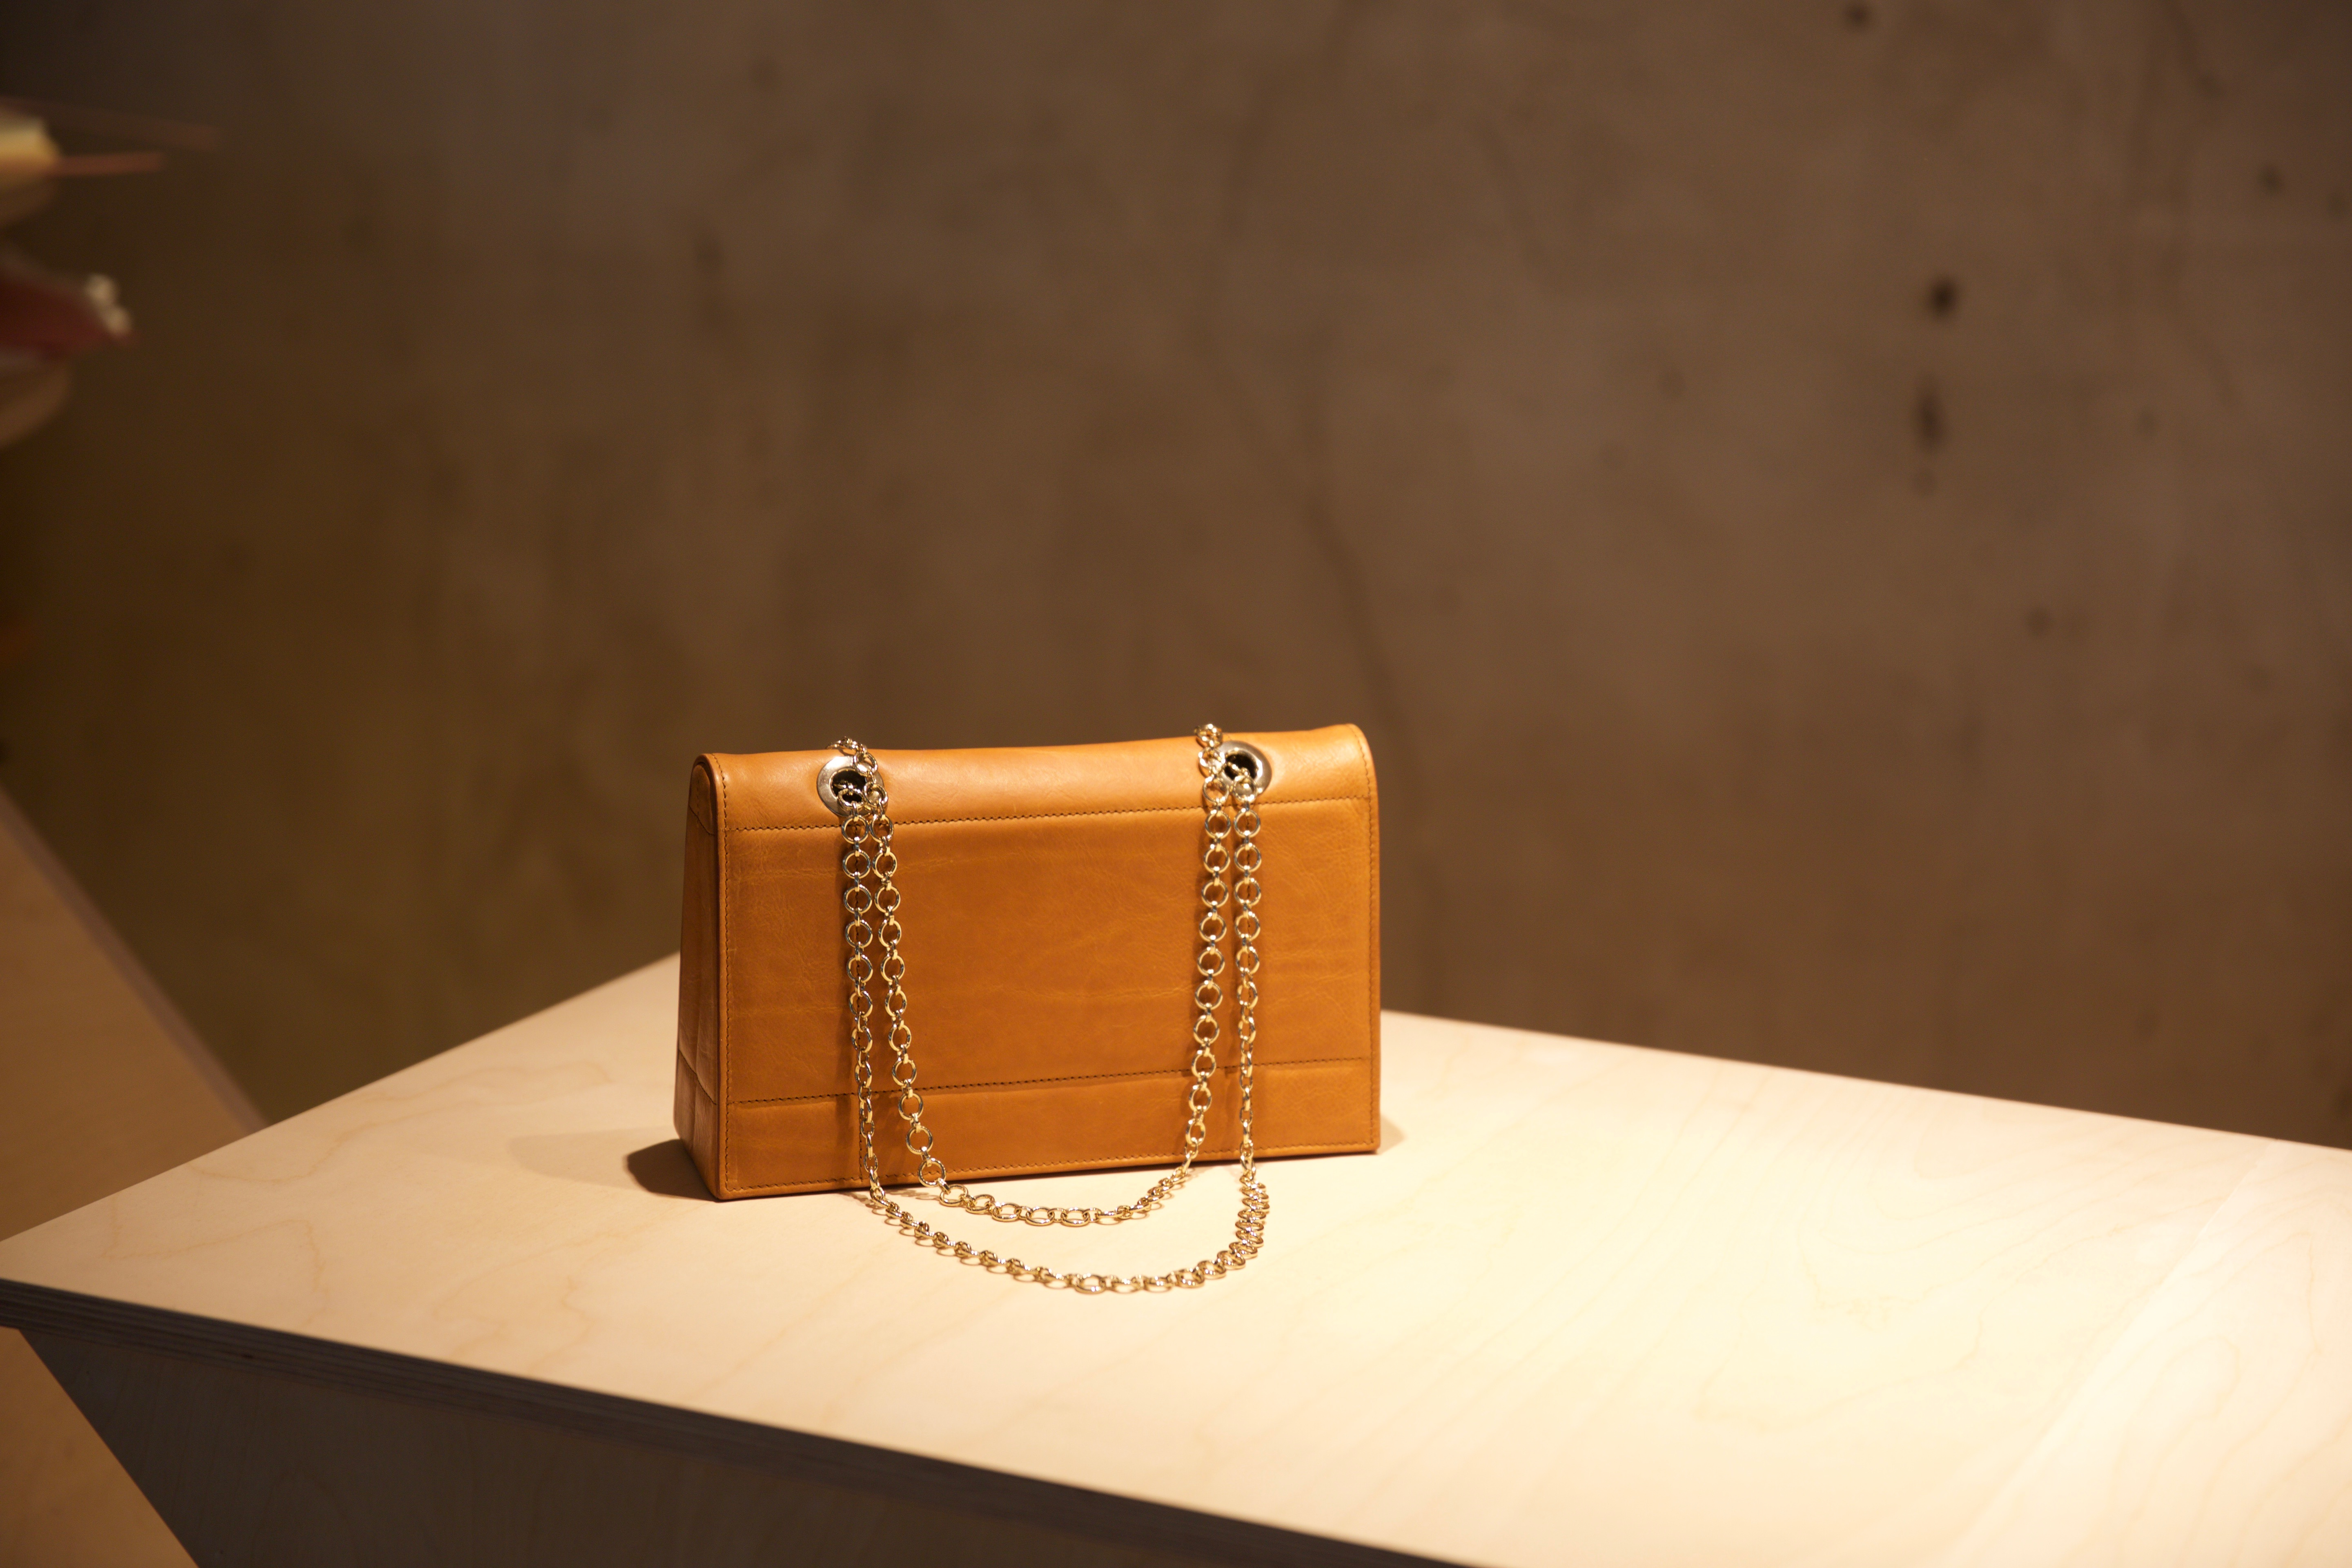 A handbag from Mary Ping's Lafayette Anticipation exhibit